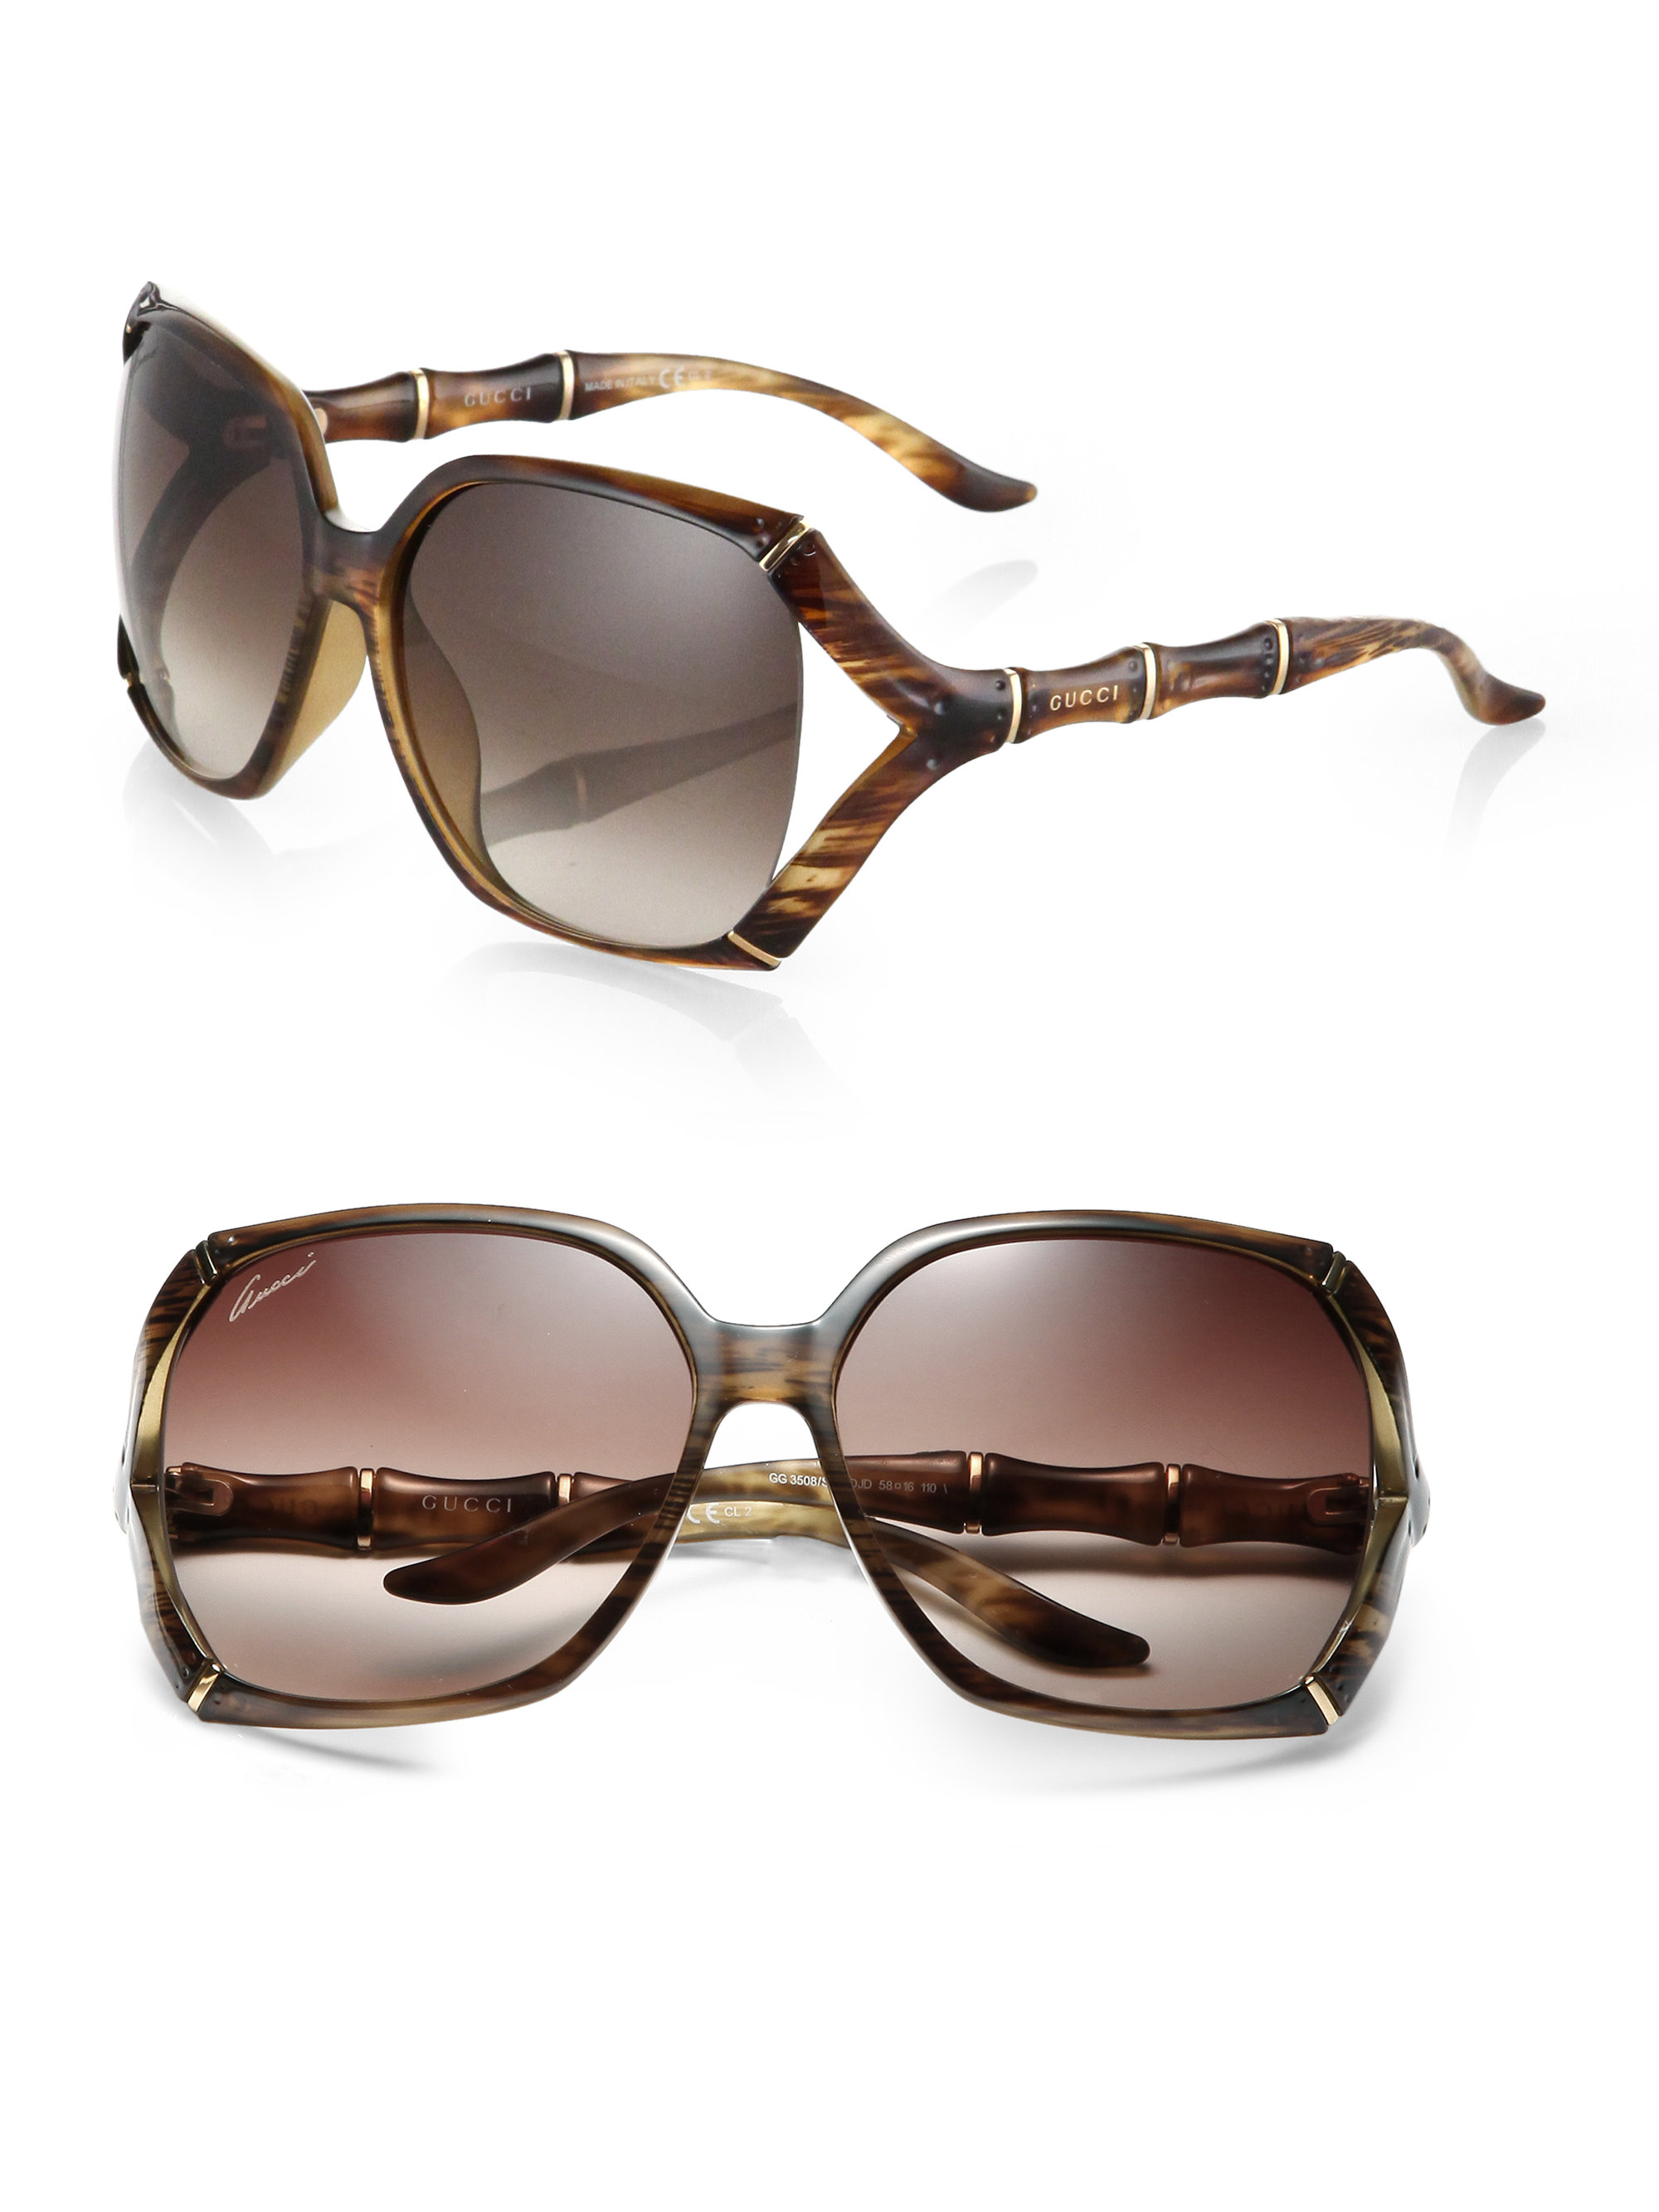 Gucci Sunglasses Bamboo Frame  gucci sunglasses in brown lyst